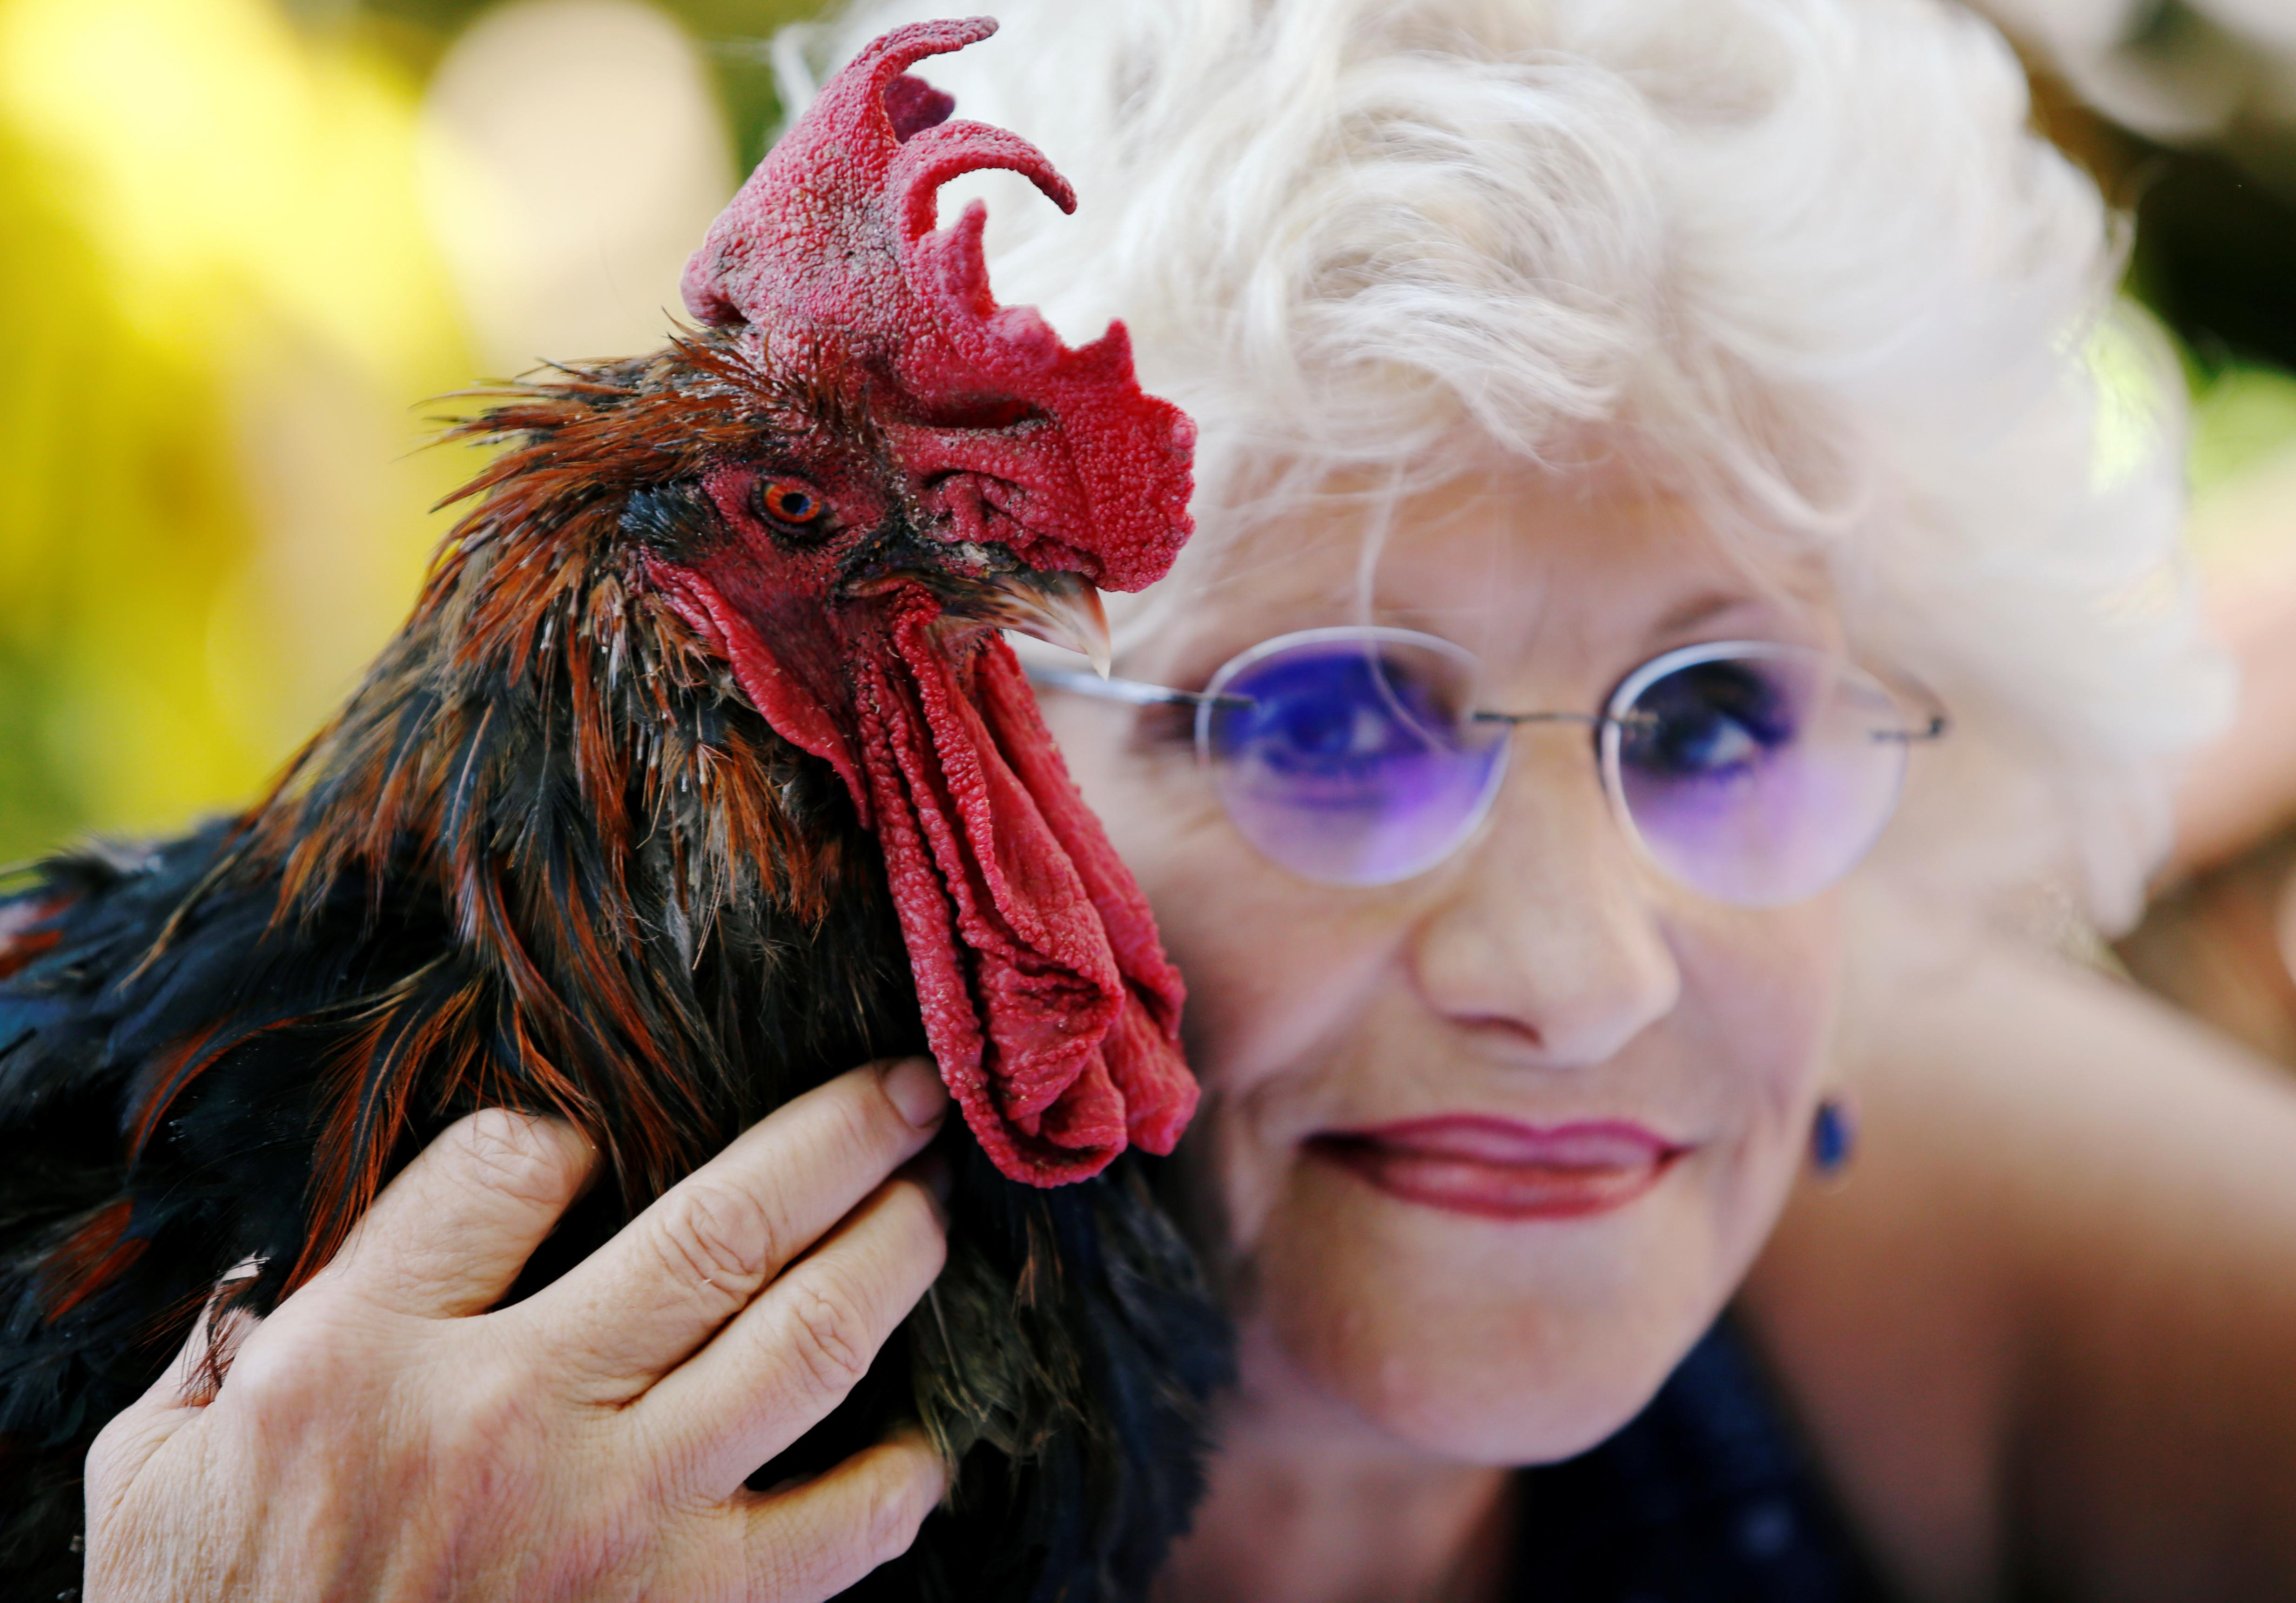 Maurice the Rooster pitches city slickers against locals in rural...